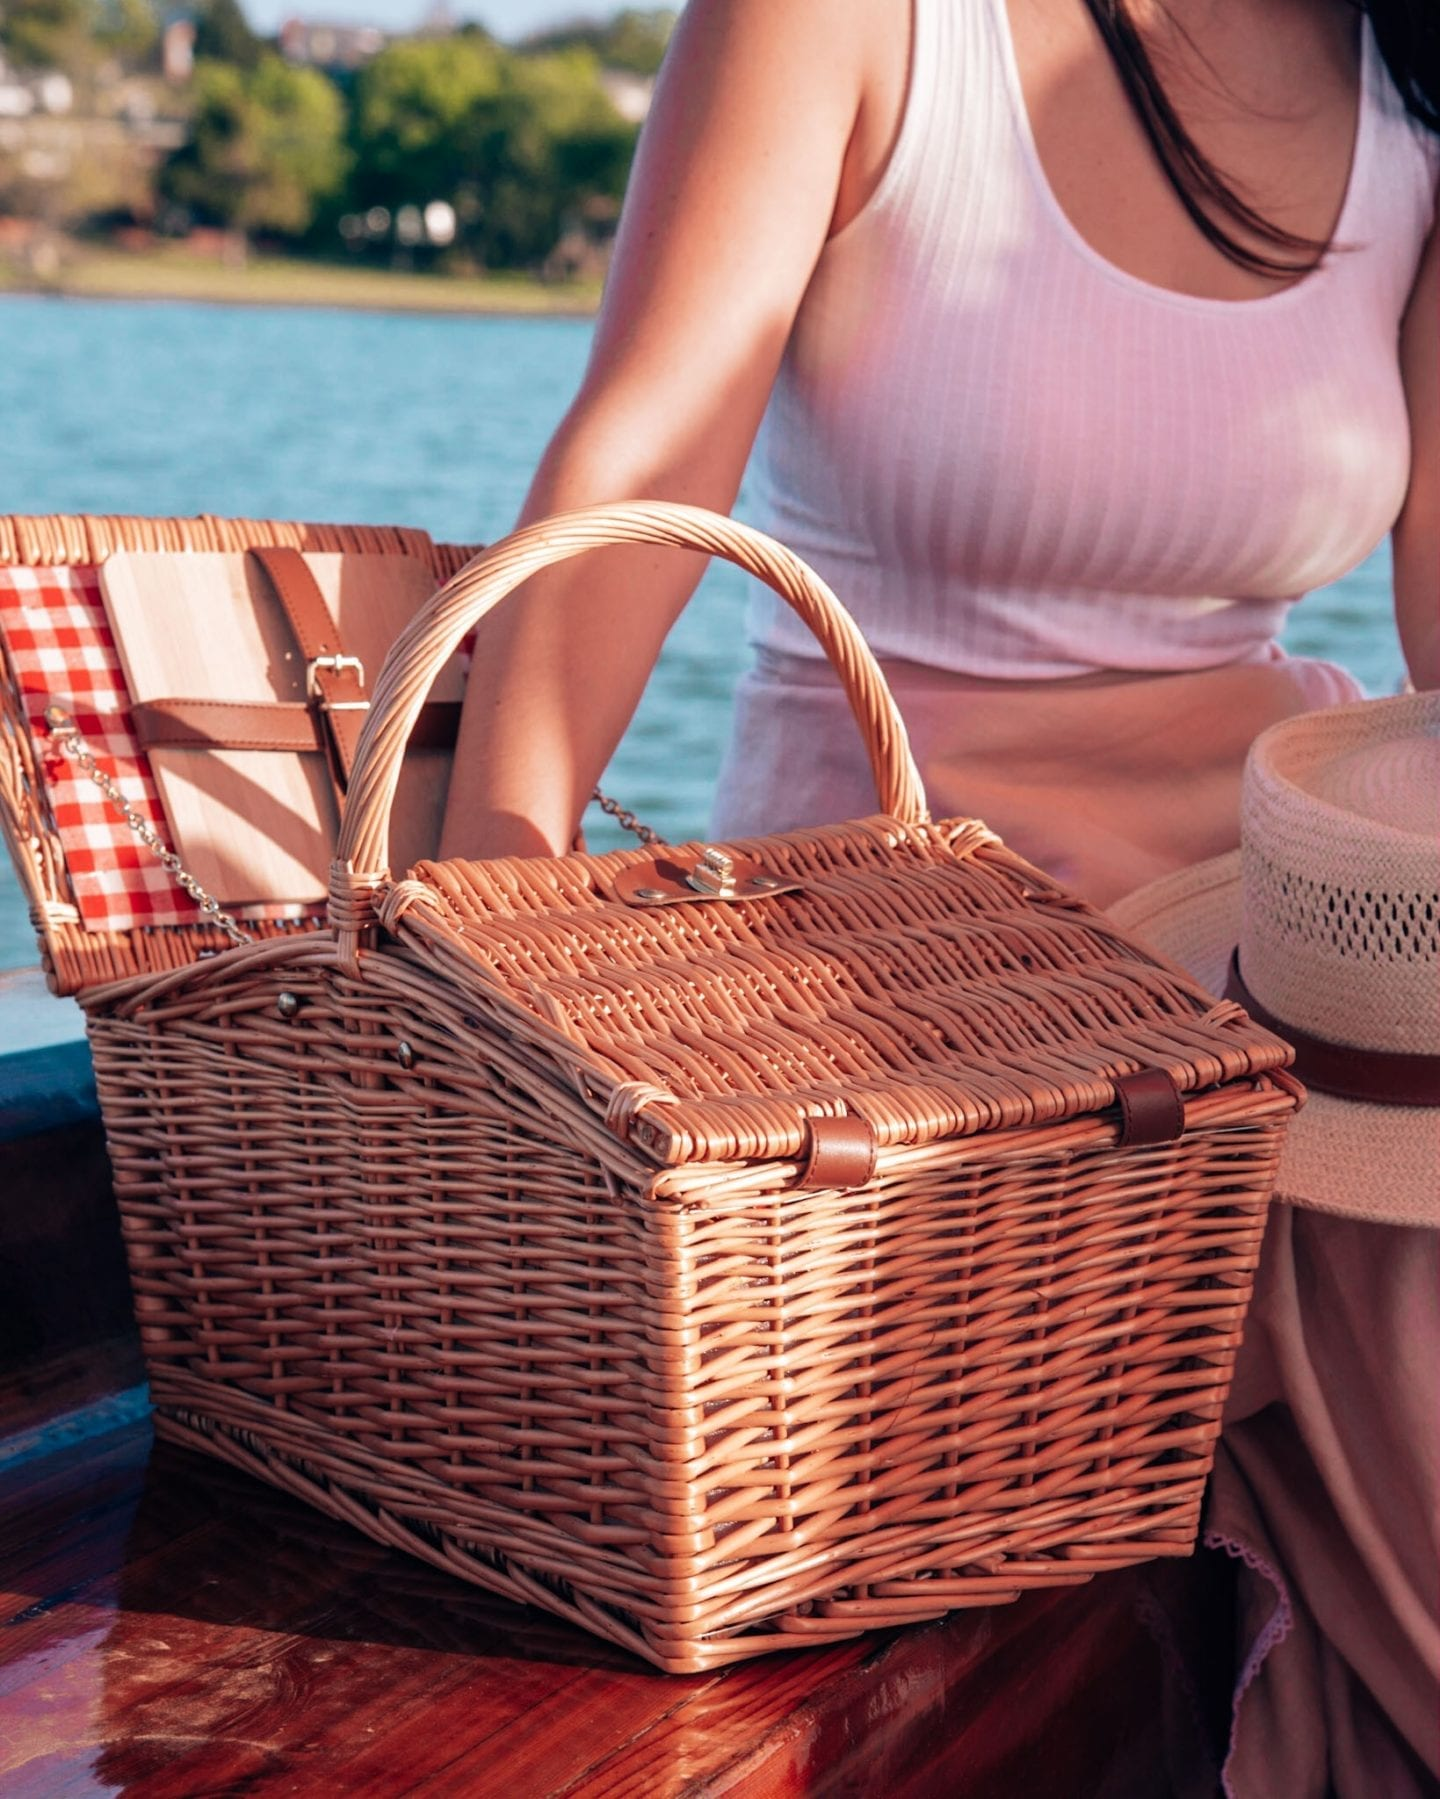 picnic basket on a boat